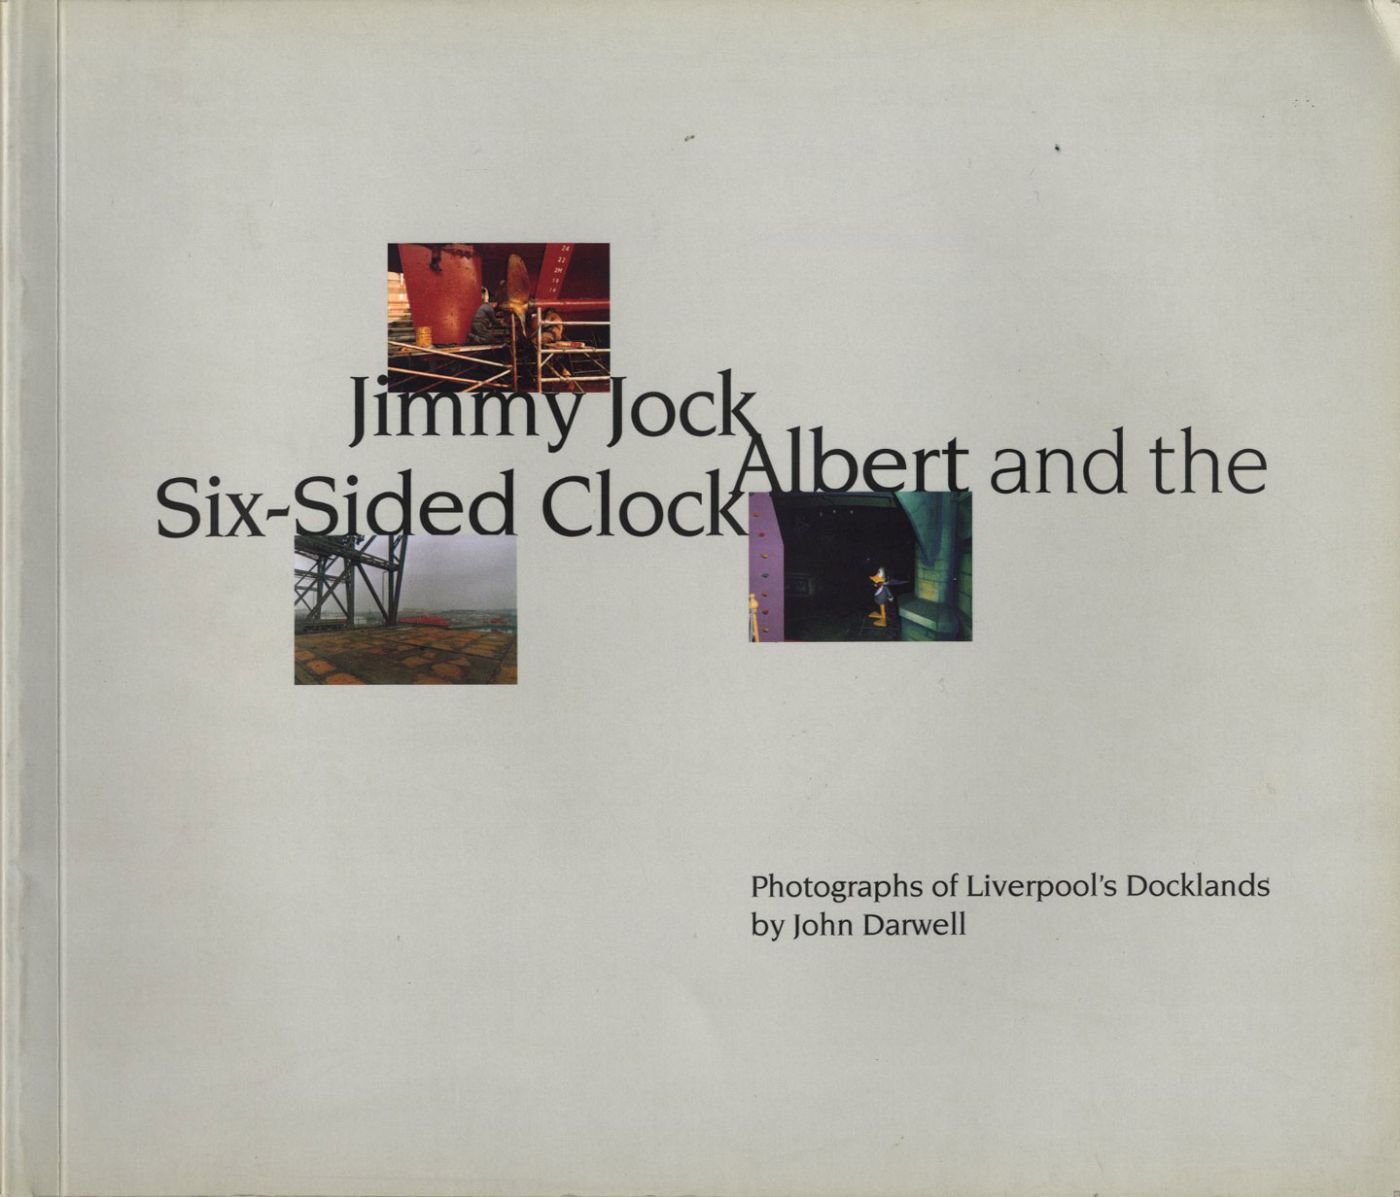 Jimmy Jock, Albert and the Six-Sided Clock: Photographs of Liverpool's Docklands [SIGNED ASSOCIATION COPY]